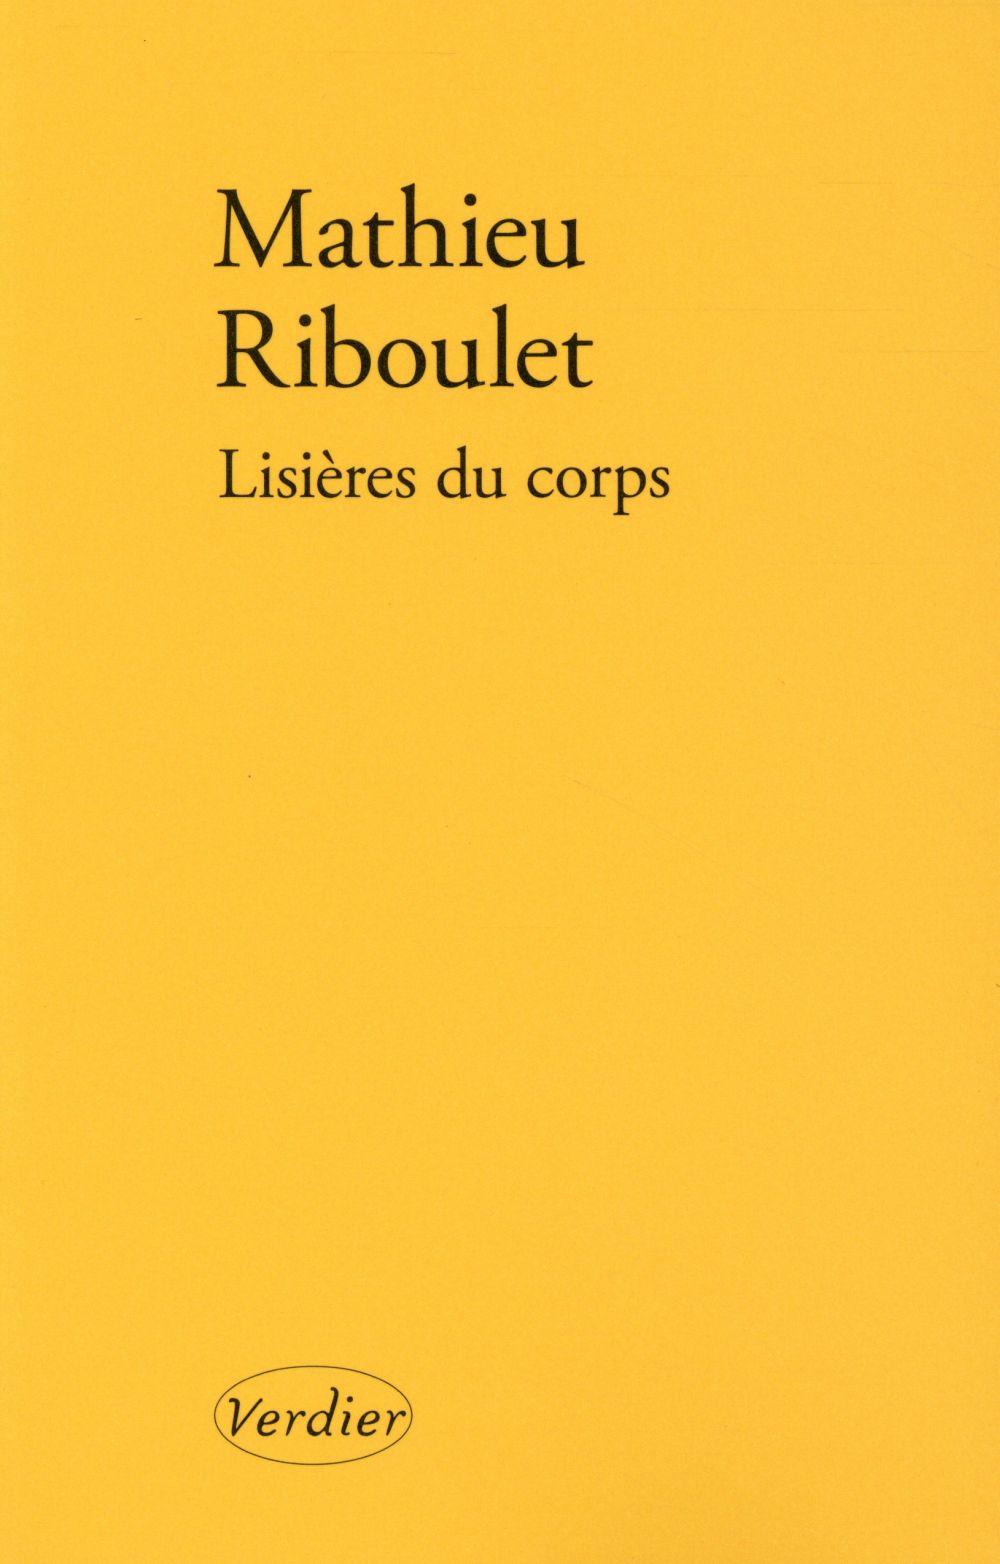 LISIERES DU CORPS